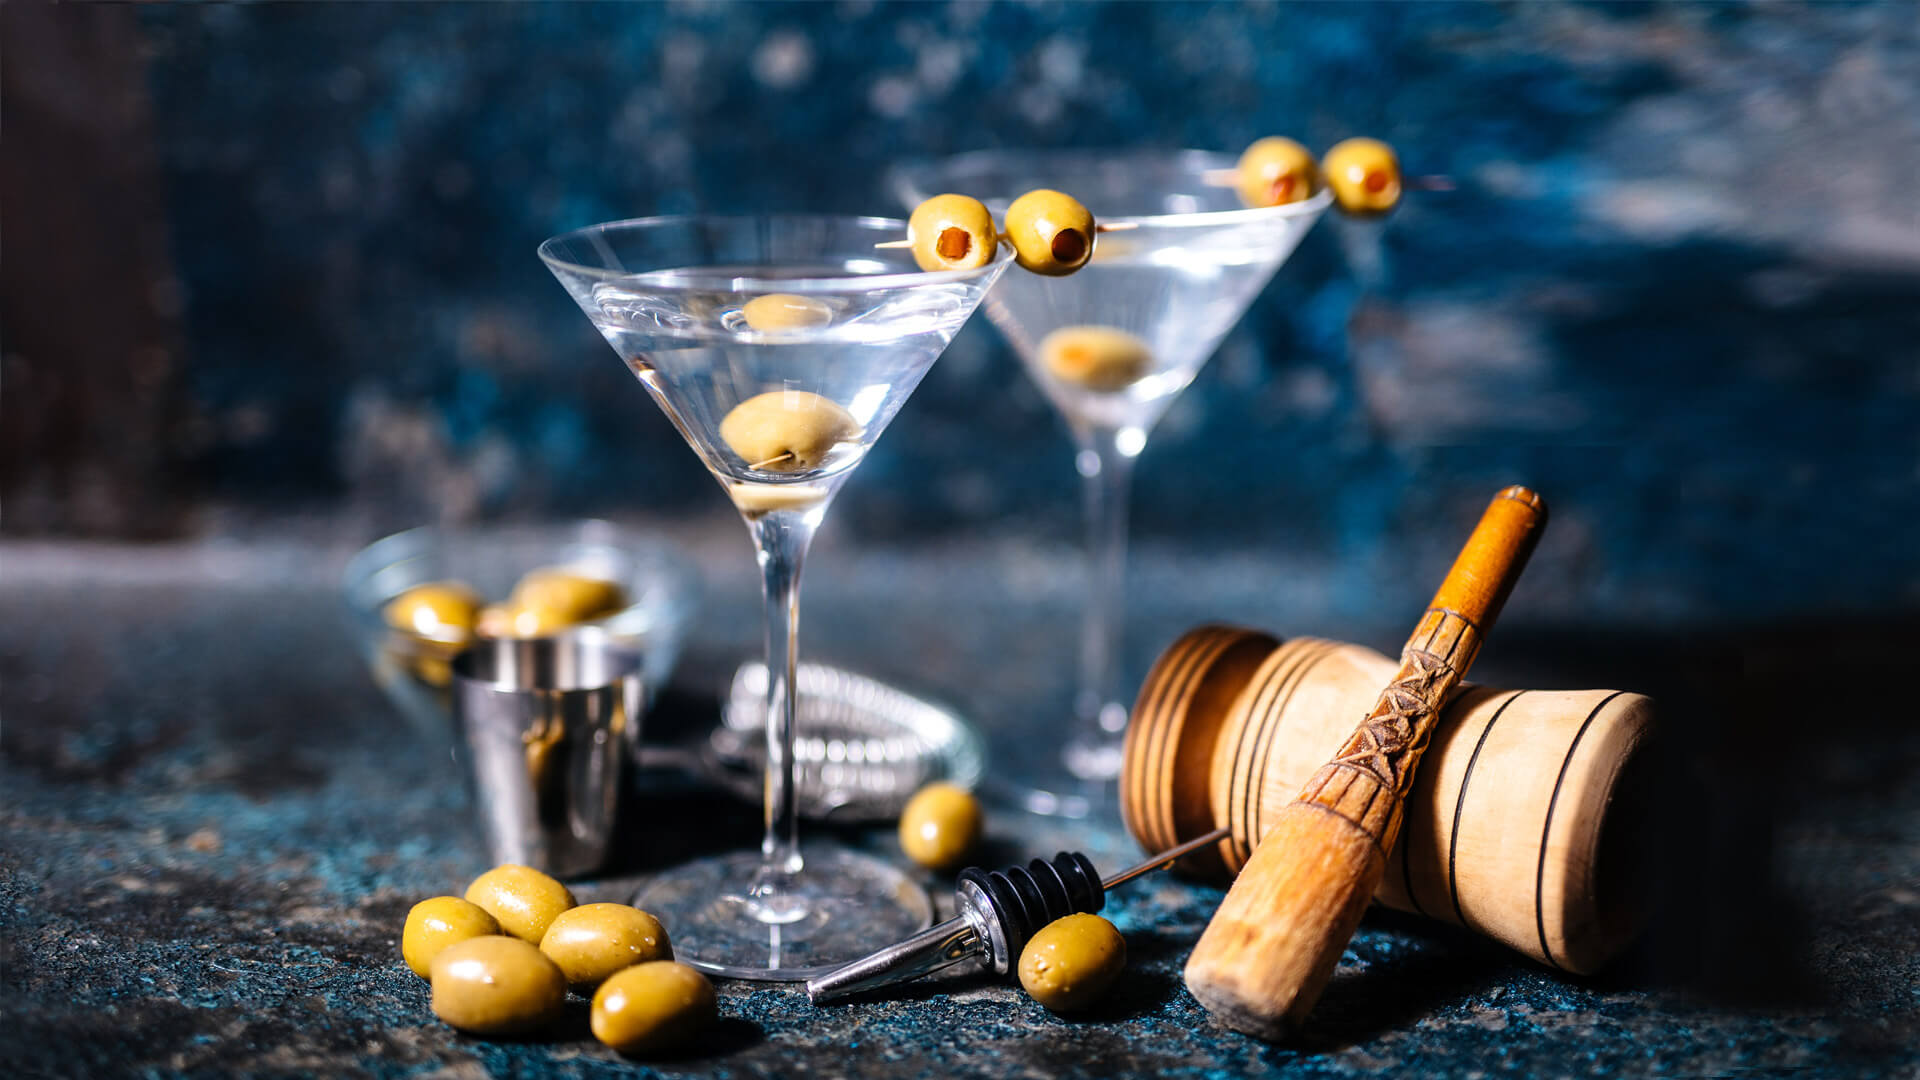 Martini Cocktail with olives in ambient setting